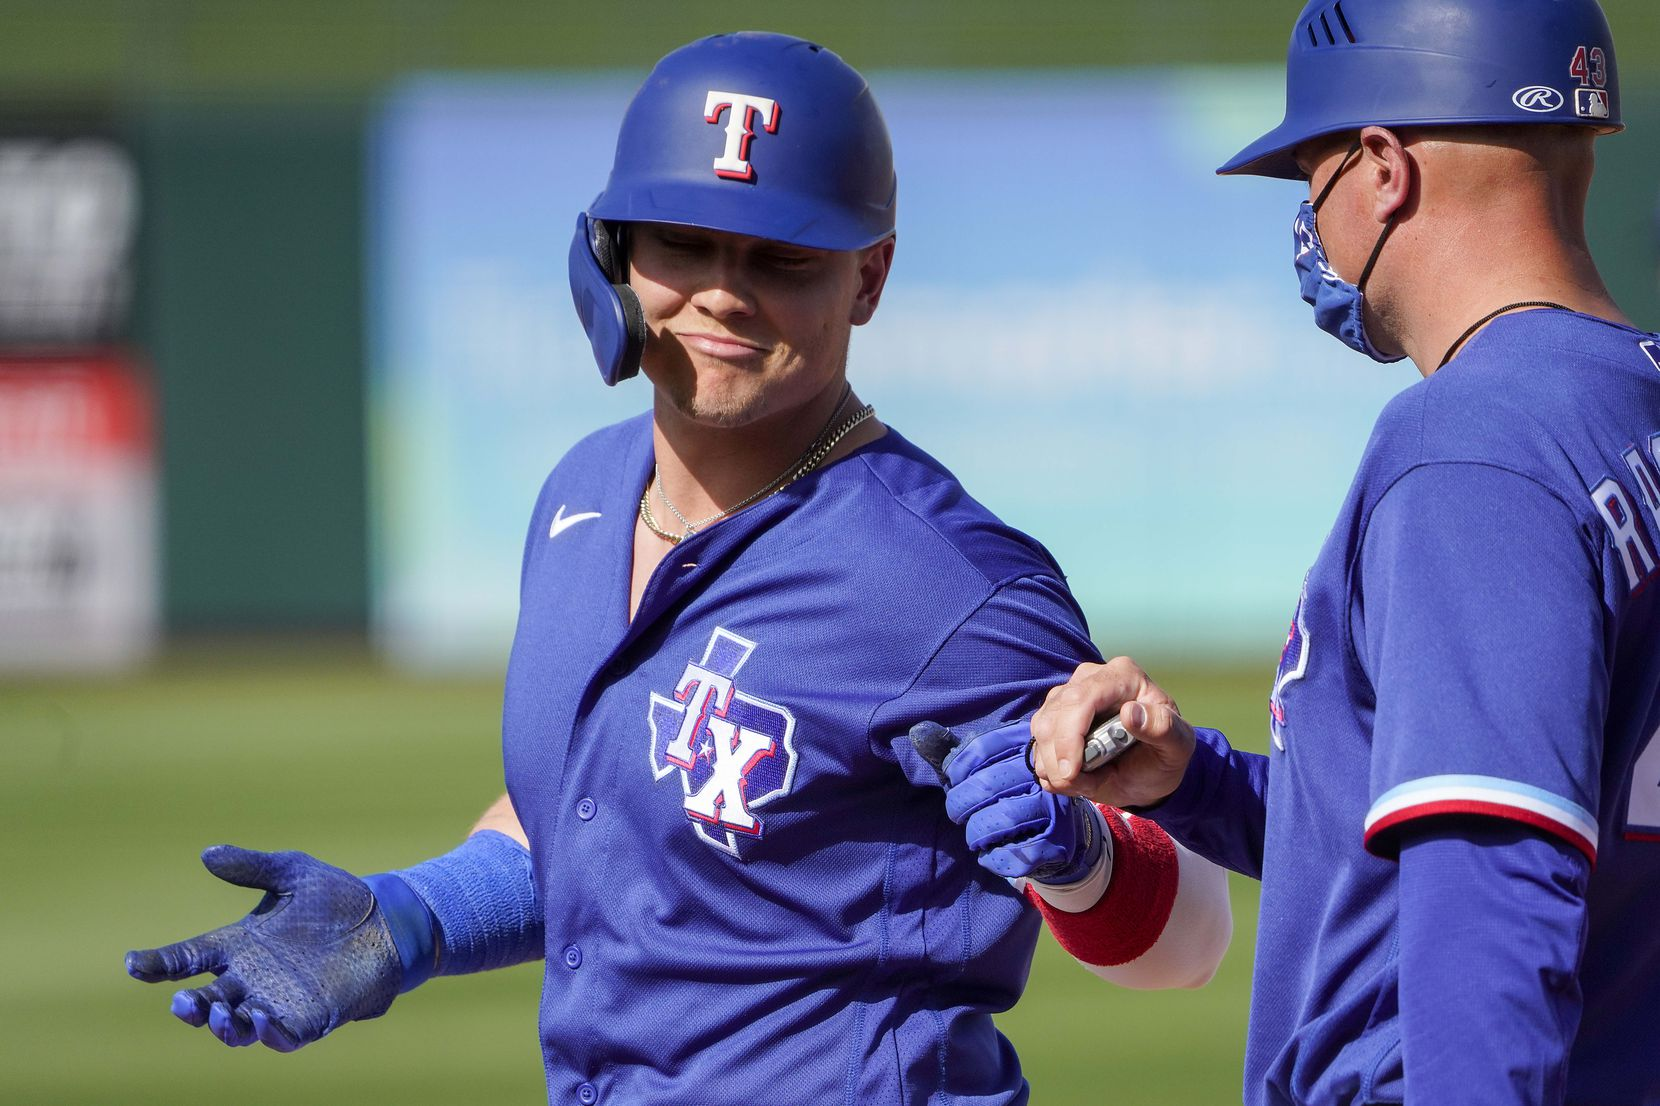 Texas Rangers outfielder Steele Walker celebrates with first base coach Corey Ragsdale after reaching on a single during the eighth inning of a spring training game against the Los Angeles Dodgers at Surprise Stadium on Sunday, March 7, 2021, in Surprise, Ariz.